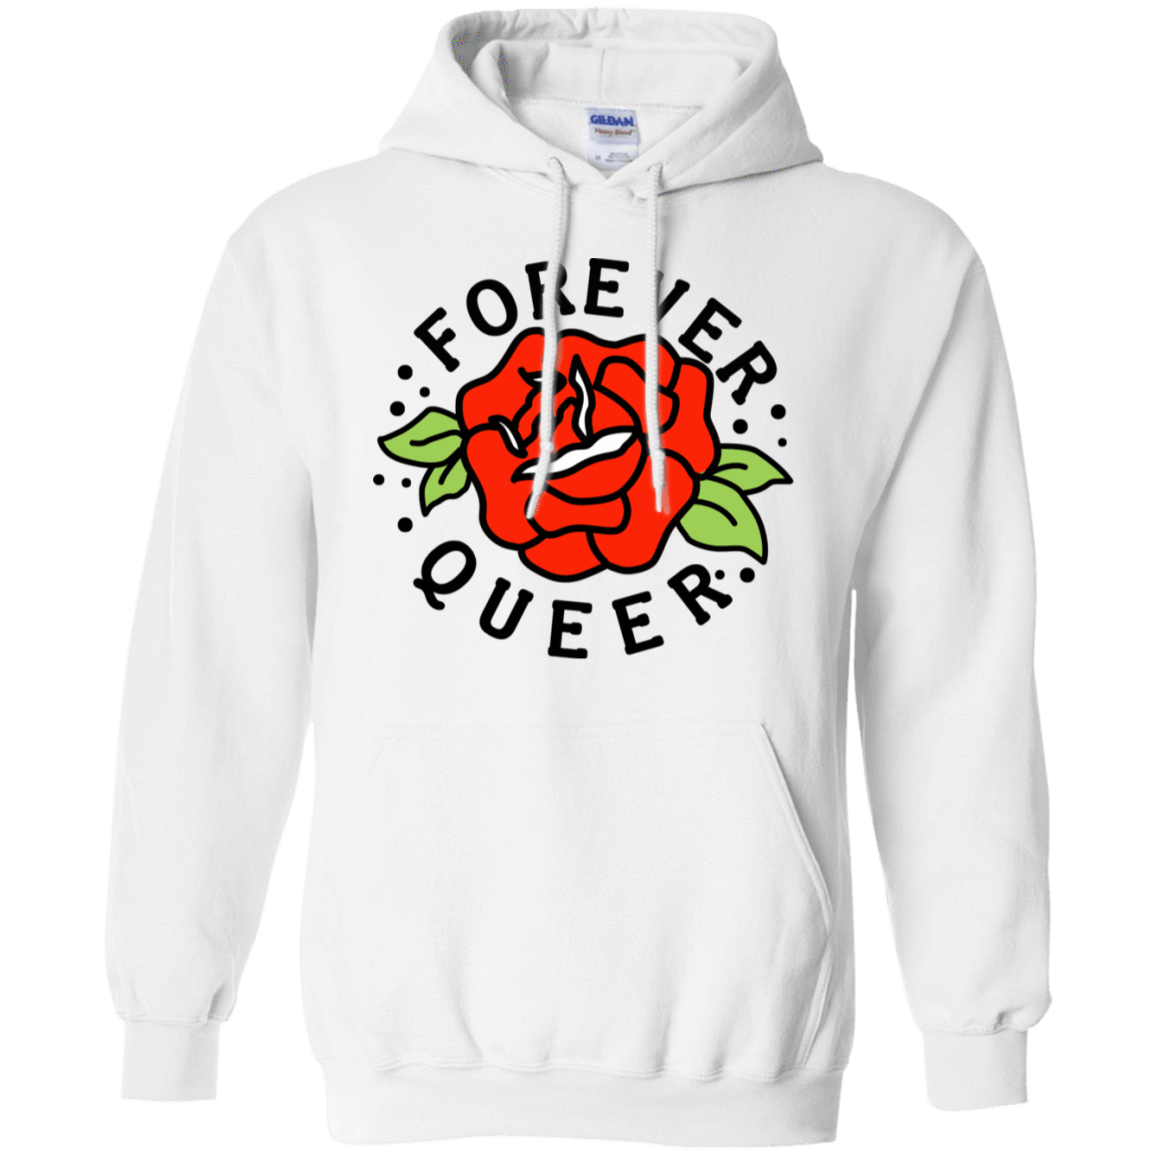 Forever Queer Rose 541-4744-73547903-23183 - Tee Ript